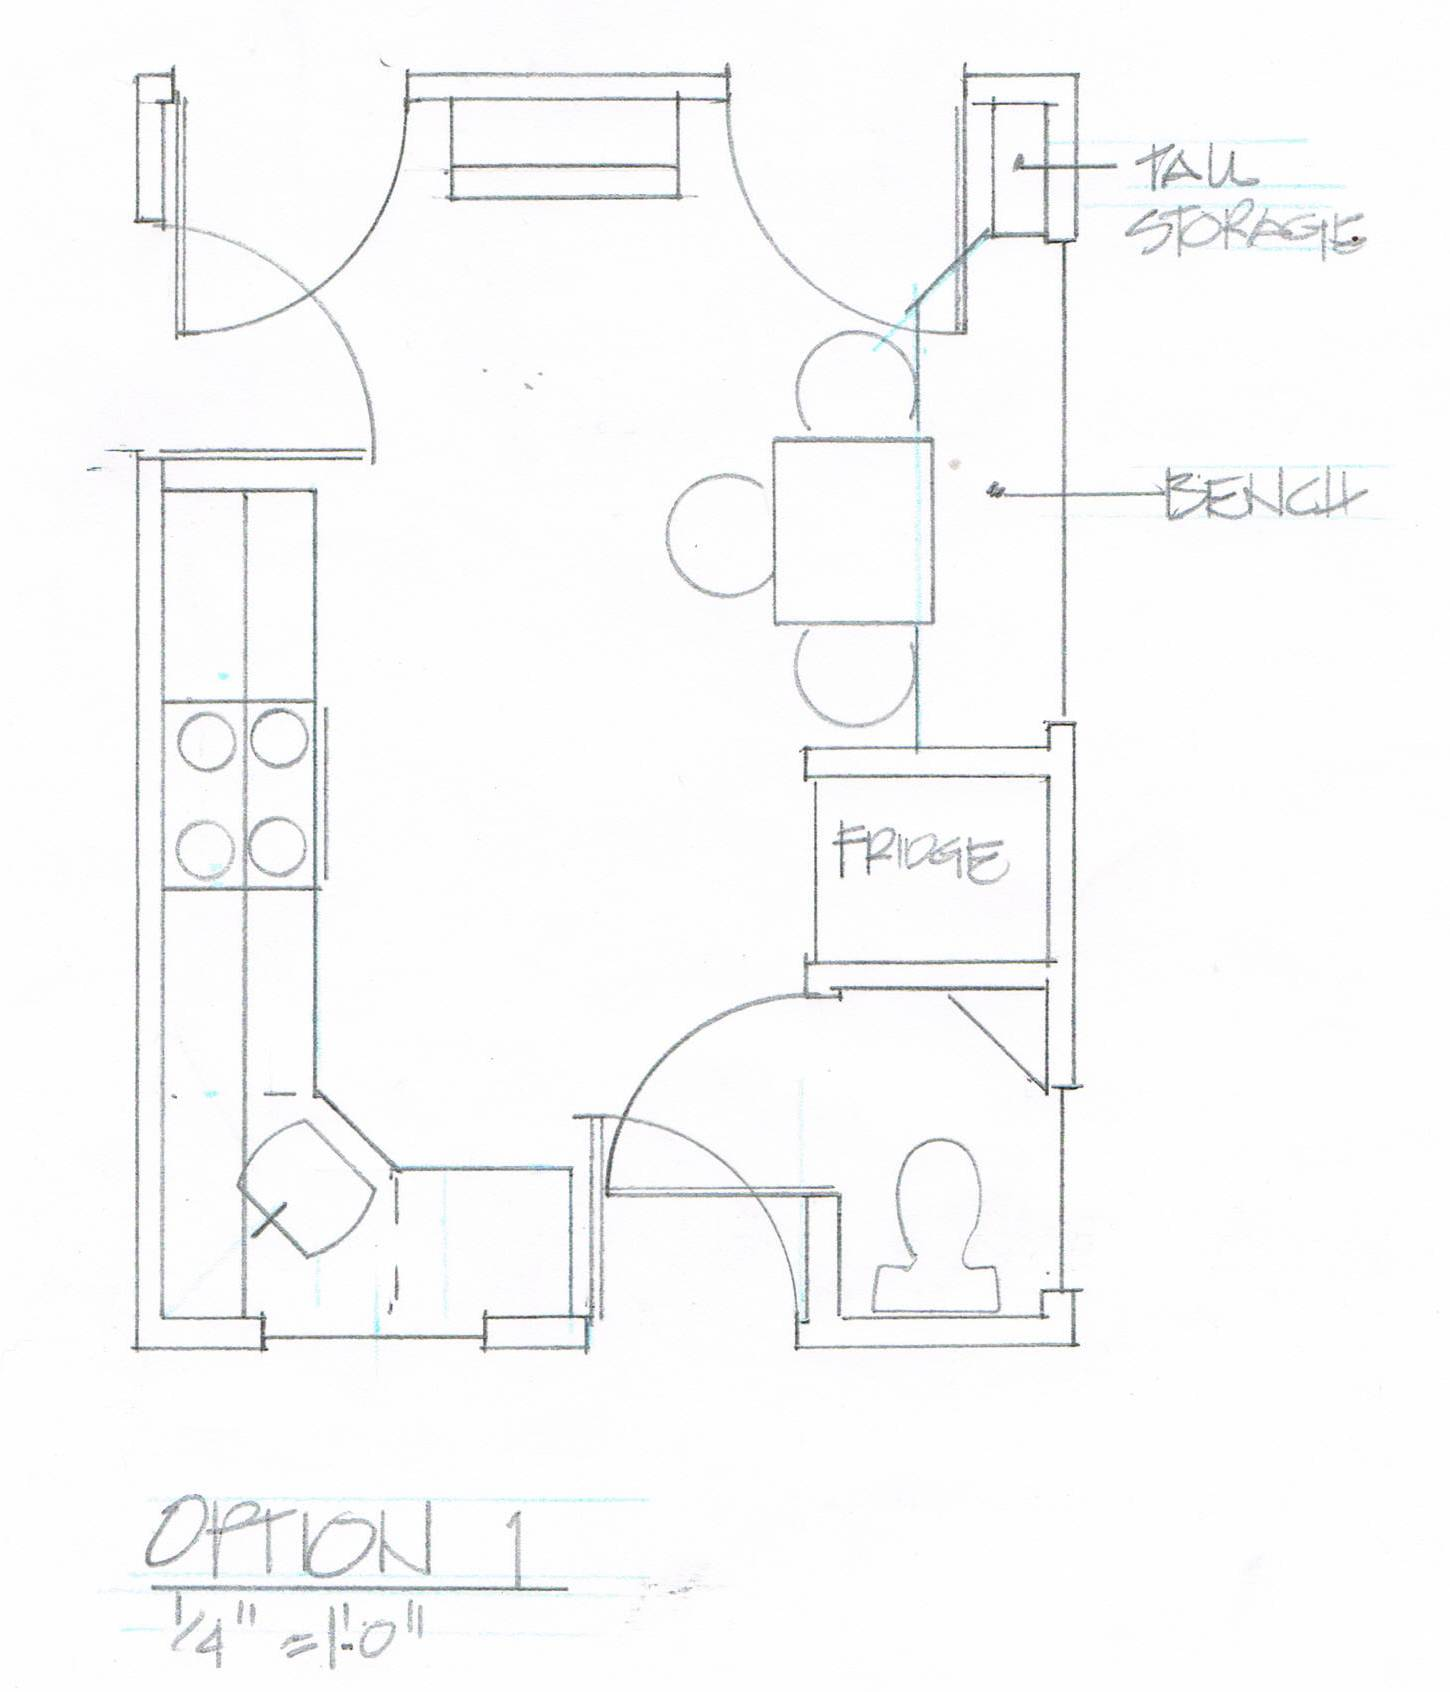 Kitchen Cabinet Drawing At Getdrawings Com Free For Personal Use